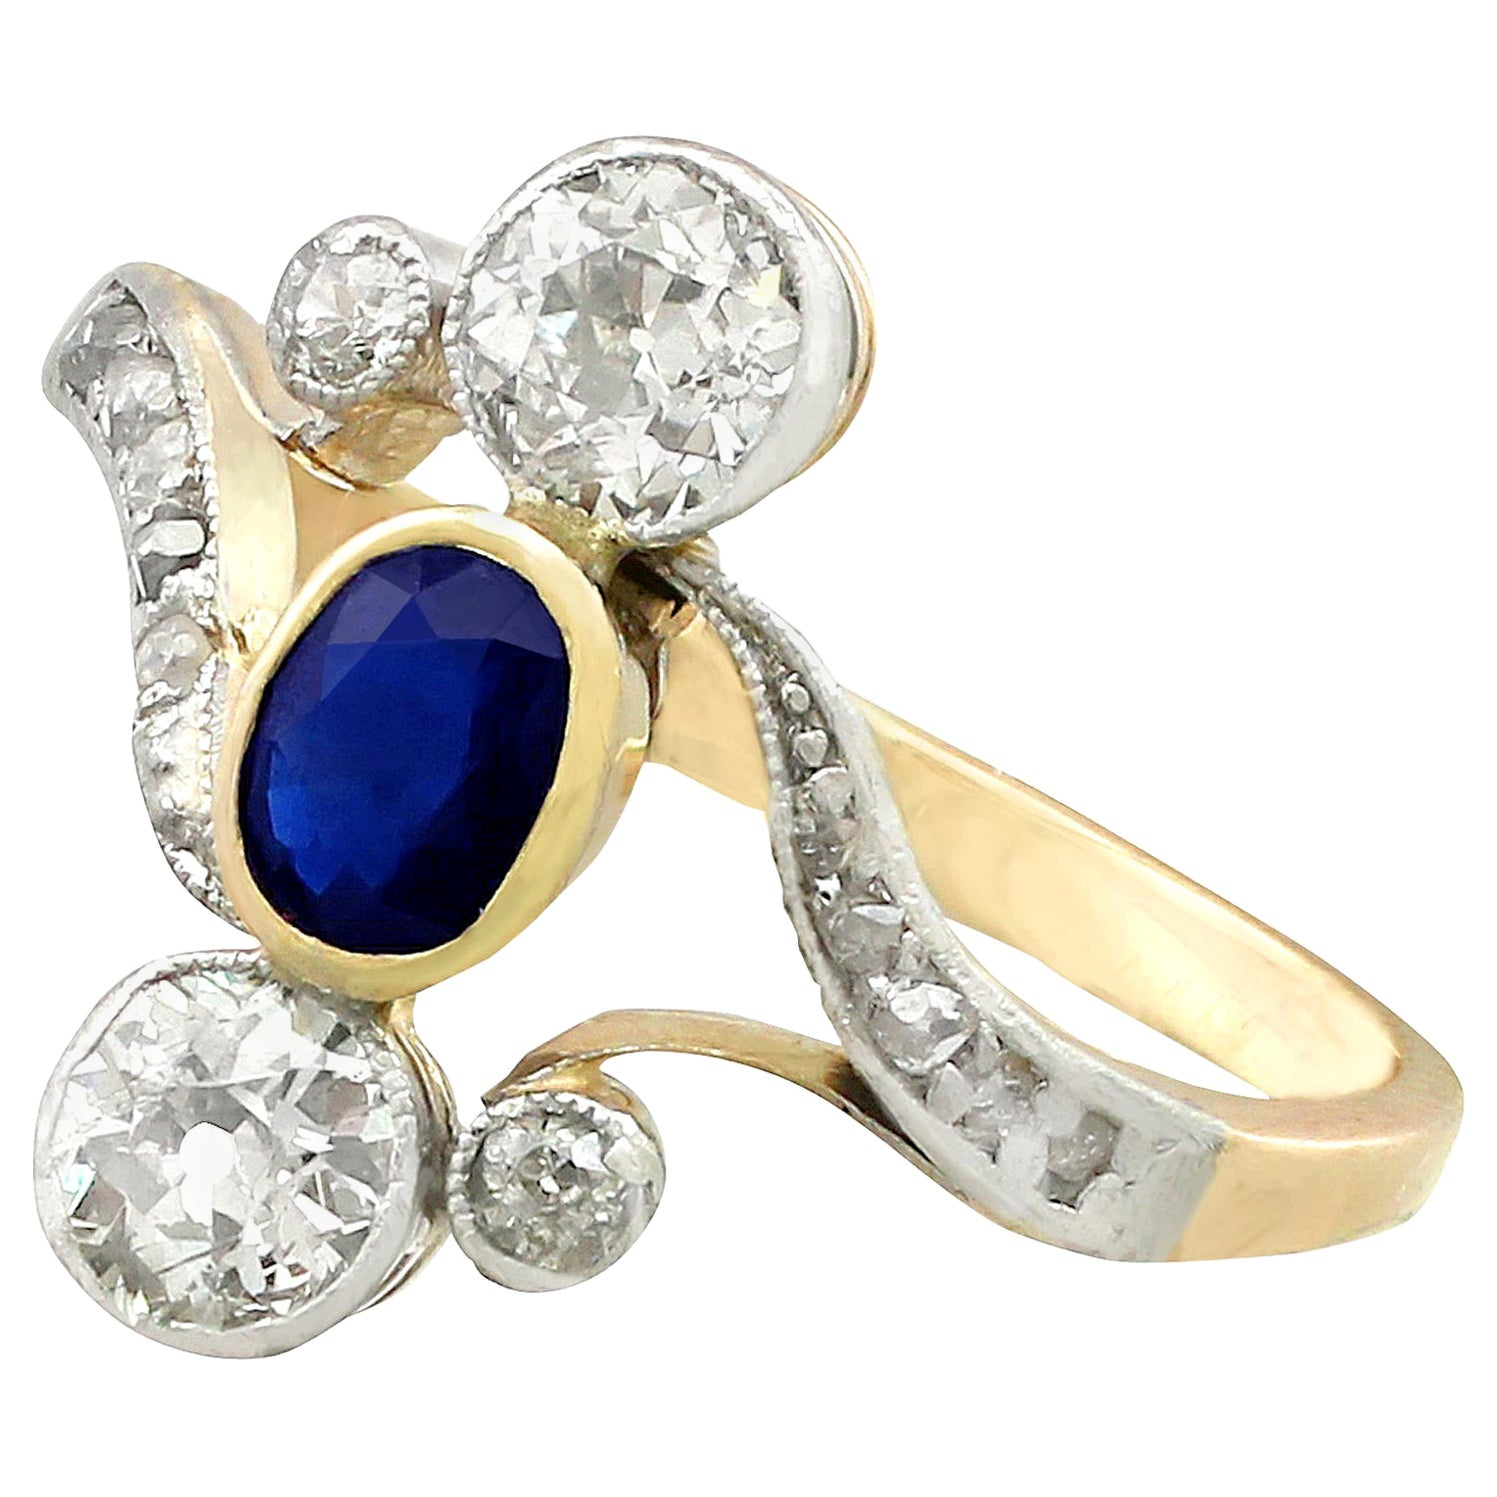 Antique 1930s Sapphire and Diamond Yellow Gold Twist Cocktail Ring